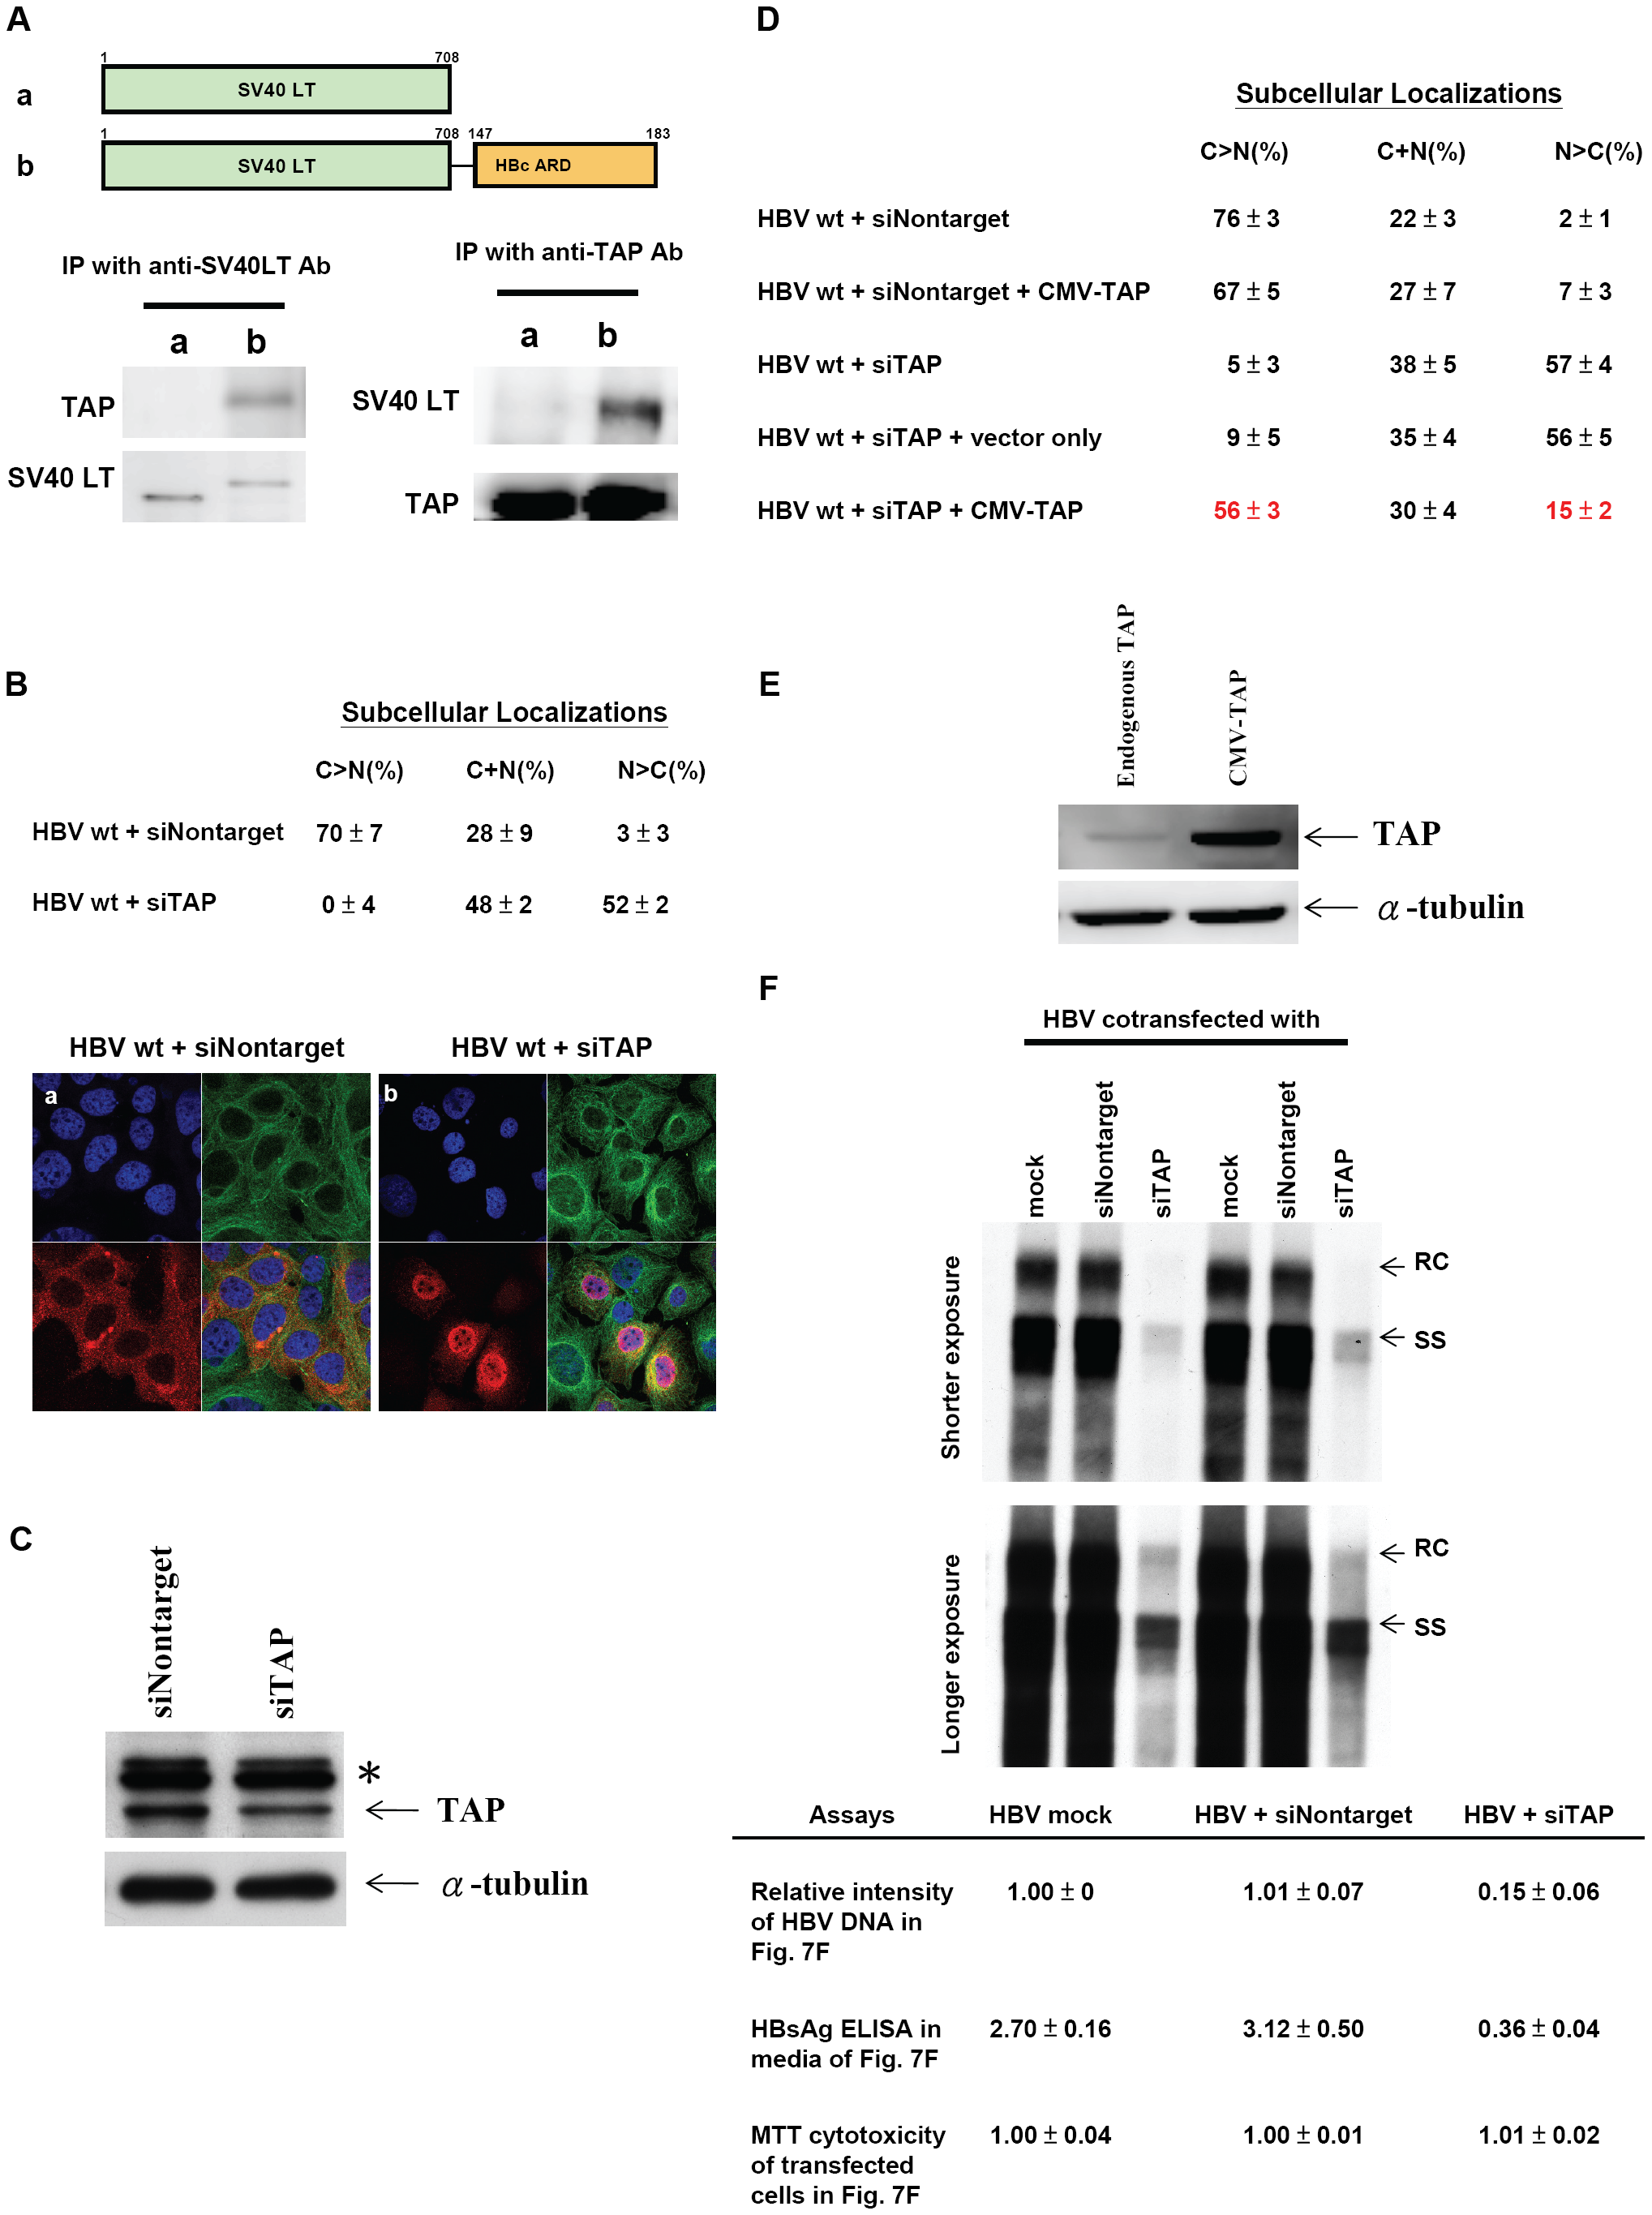 Specific physical and functional interactions between a cellular TAP protein and HBc ARD were shown by experiments of co-immunoprecipitation, si-RNA treatment, and cotransfection with a CMV-TAP expression vector.